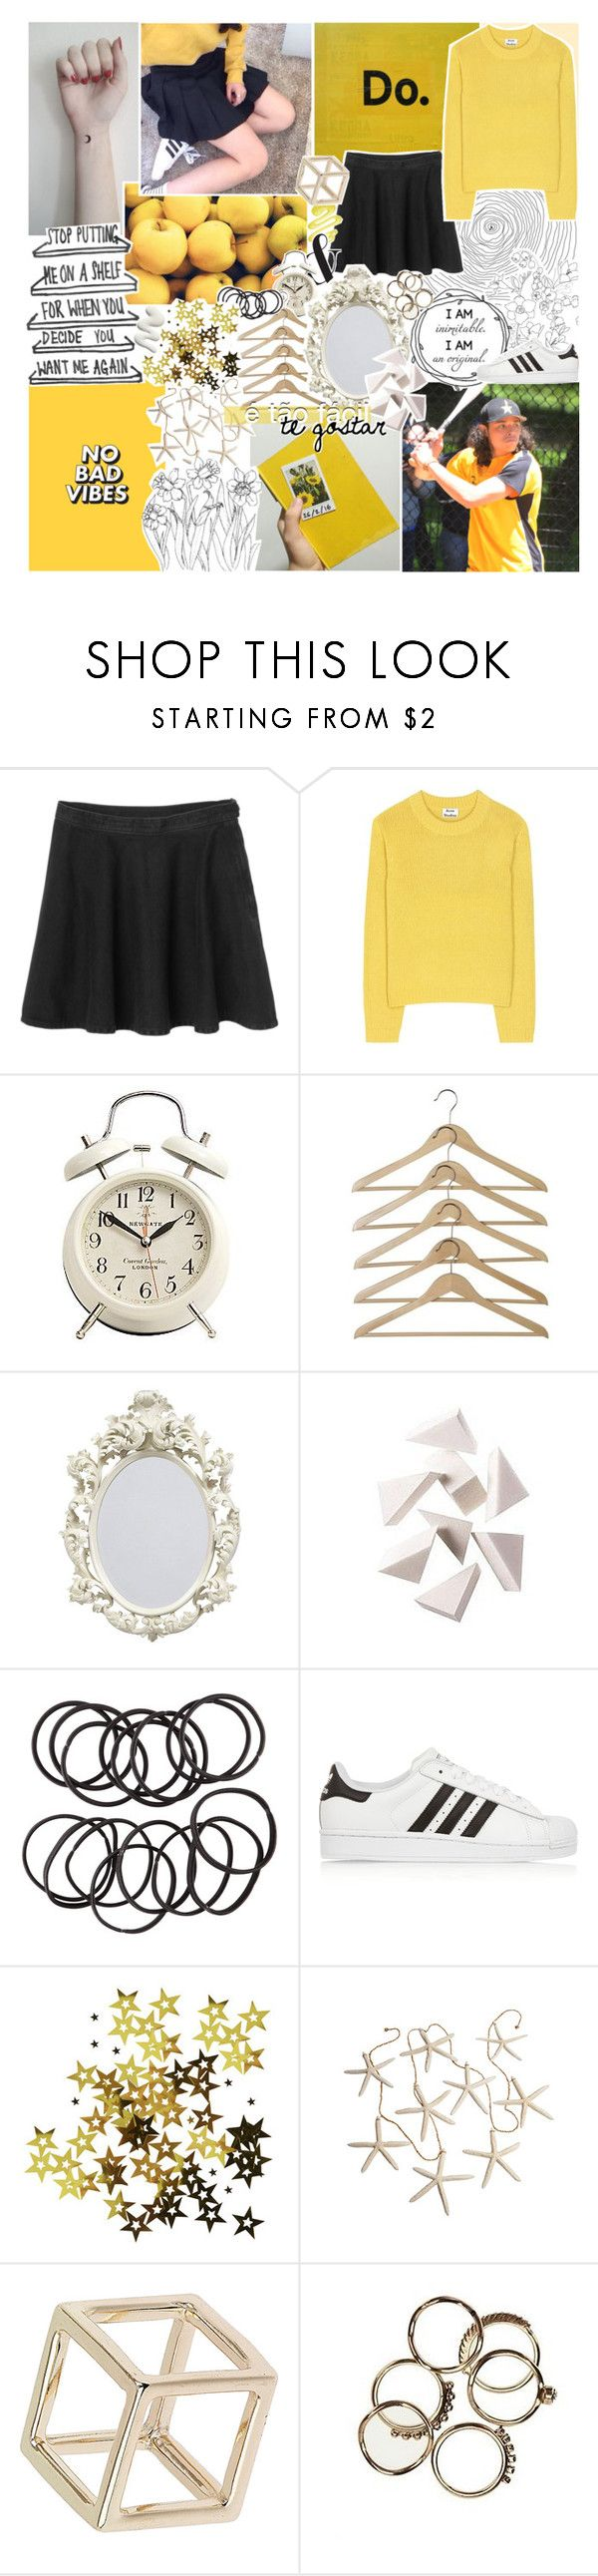 """""""CHAMEGO MEU, OLHA PRA CÁ ✽"""" by uss-nefelibata ❤ liked on Polyvore featuring Monki, Acne Studios, Bobbi Brown Cosmetics, H&M, adidas Originals, Topshop and Citizens of Humanity"""